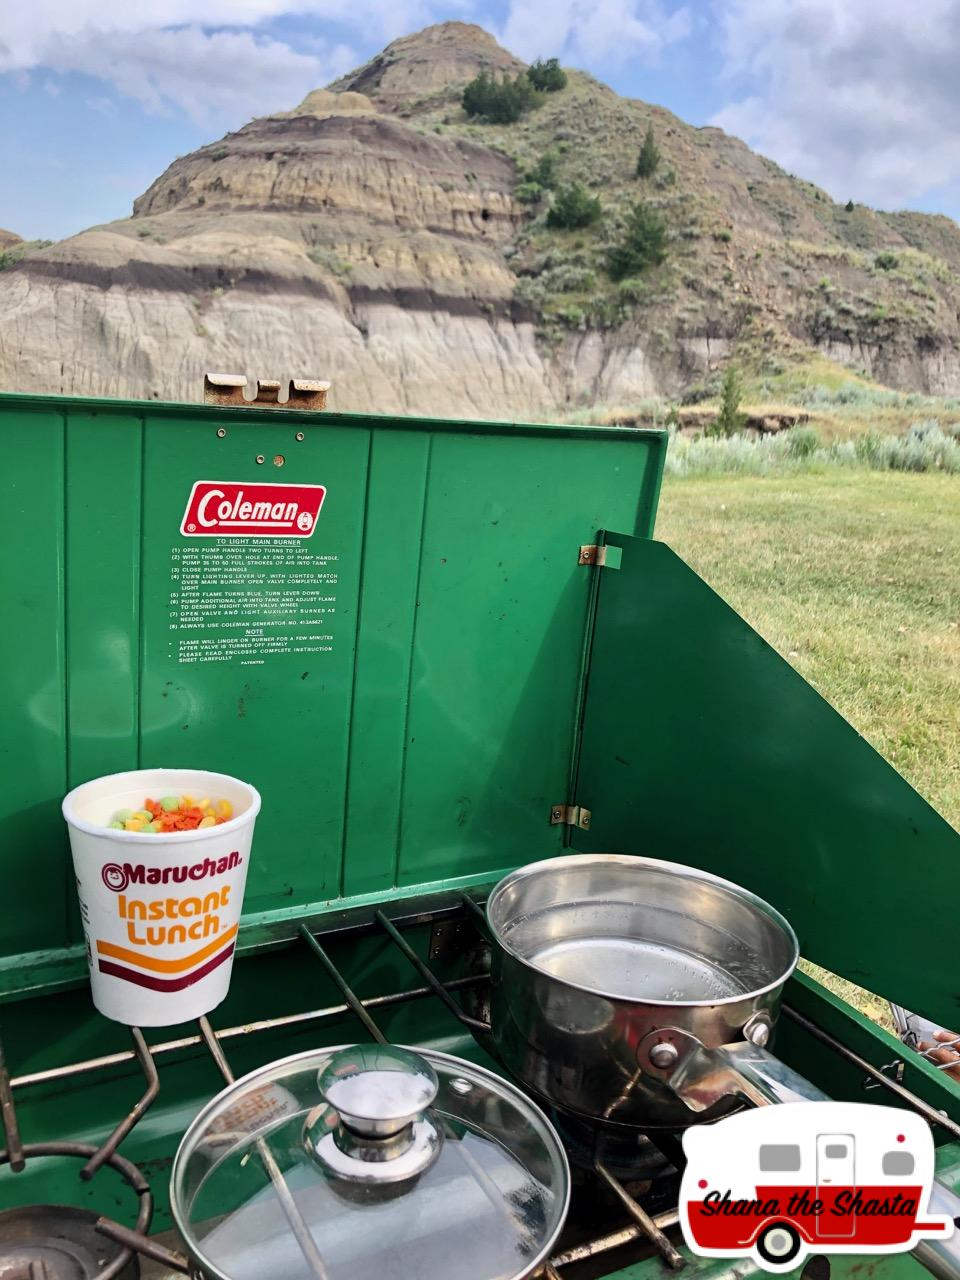 Campsite-Instant-Lunch-on-Coleman